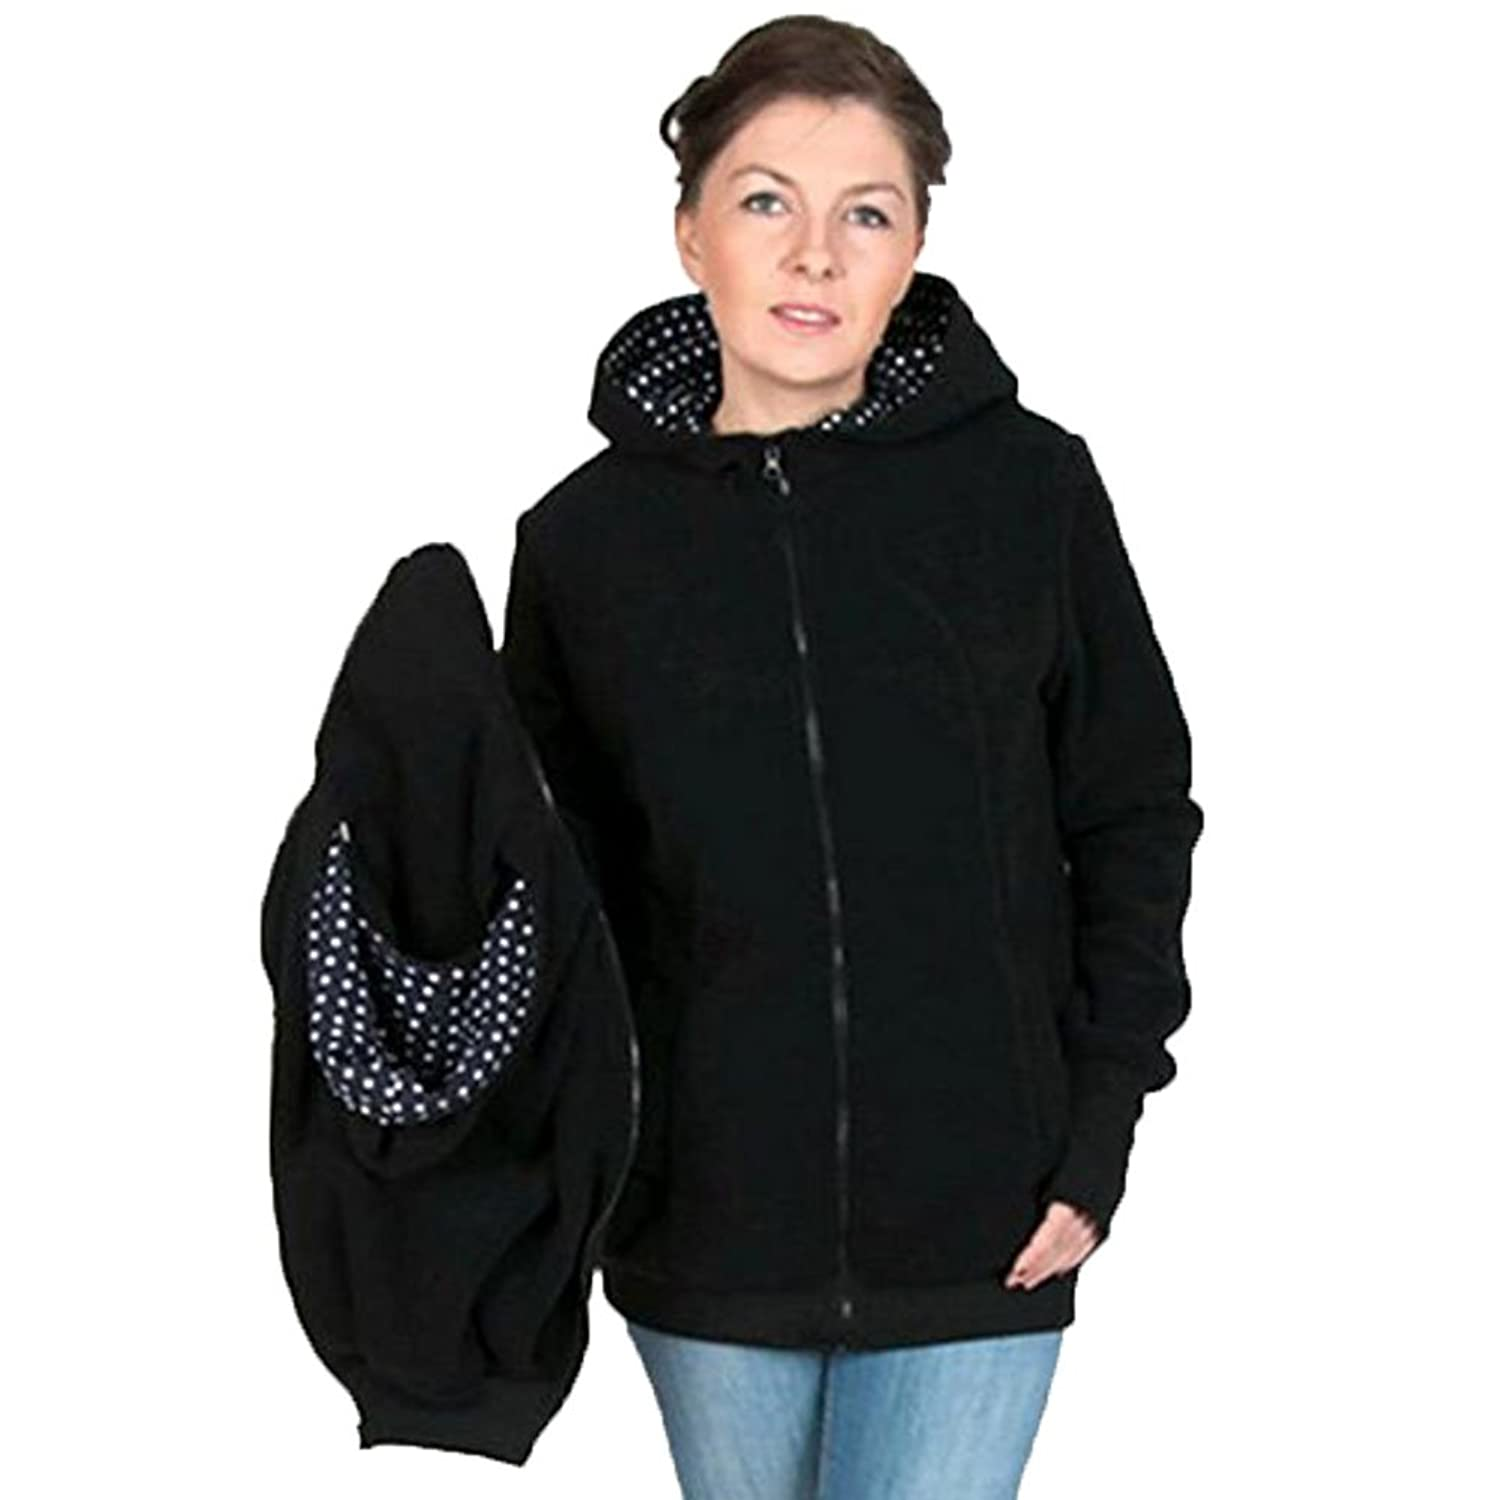 Pregnant Women Hooded Sweater with Baby Srap Backpack Highdas 3 - in - 1 Women 's Cardigan Jacket